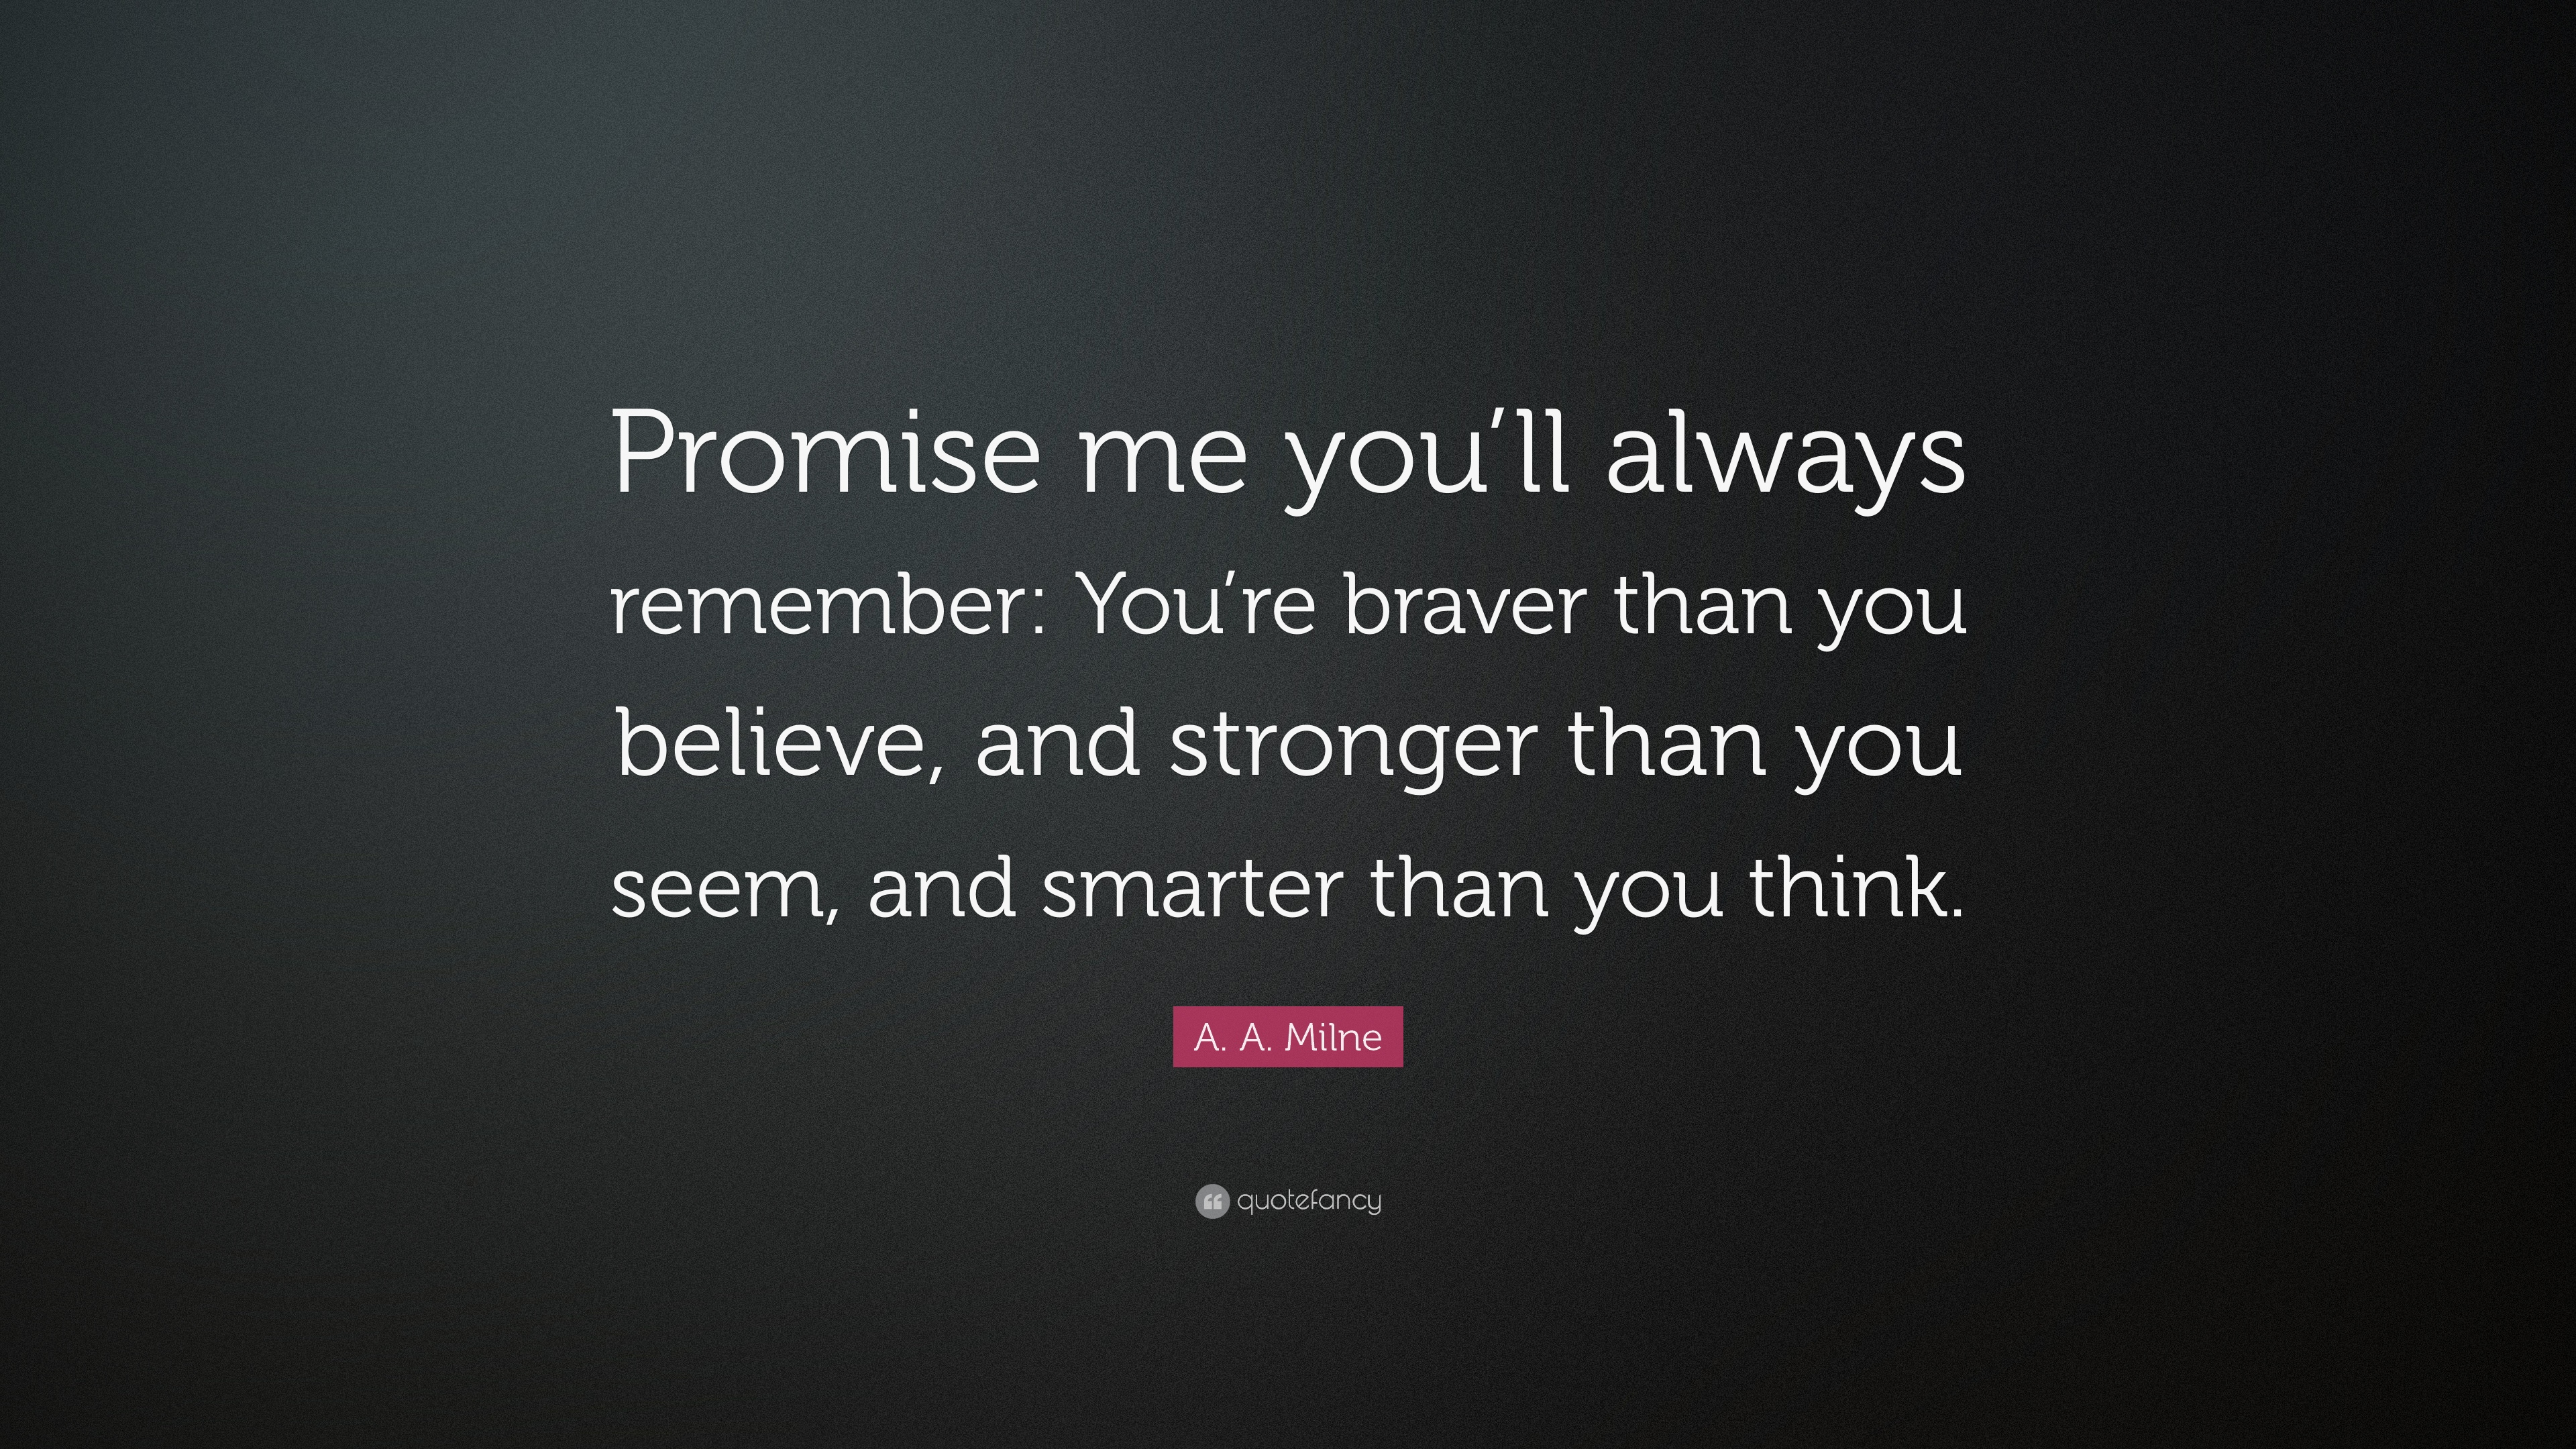 A A Milne Quote Promise Me Youll Always Remember Youre Braver